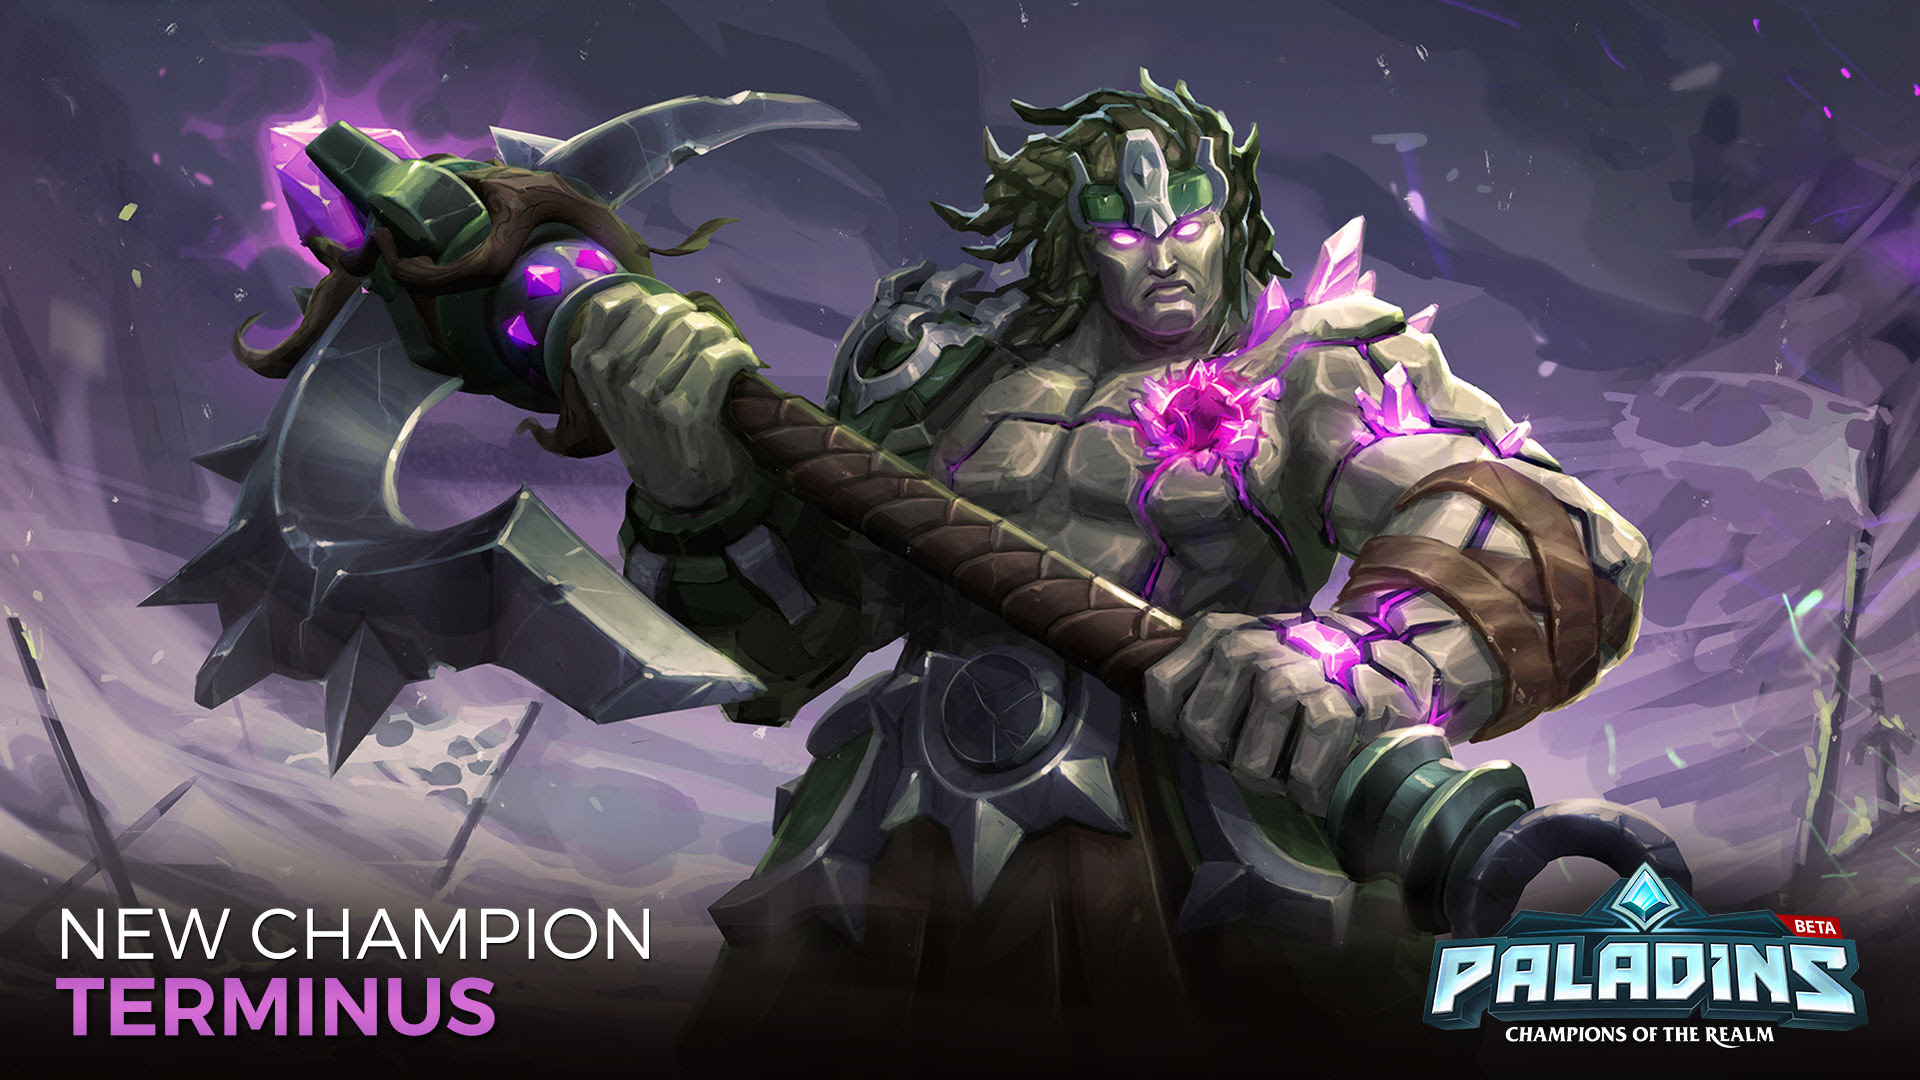 Paladins: Champions of the Realm